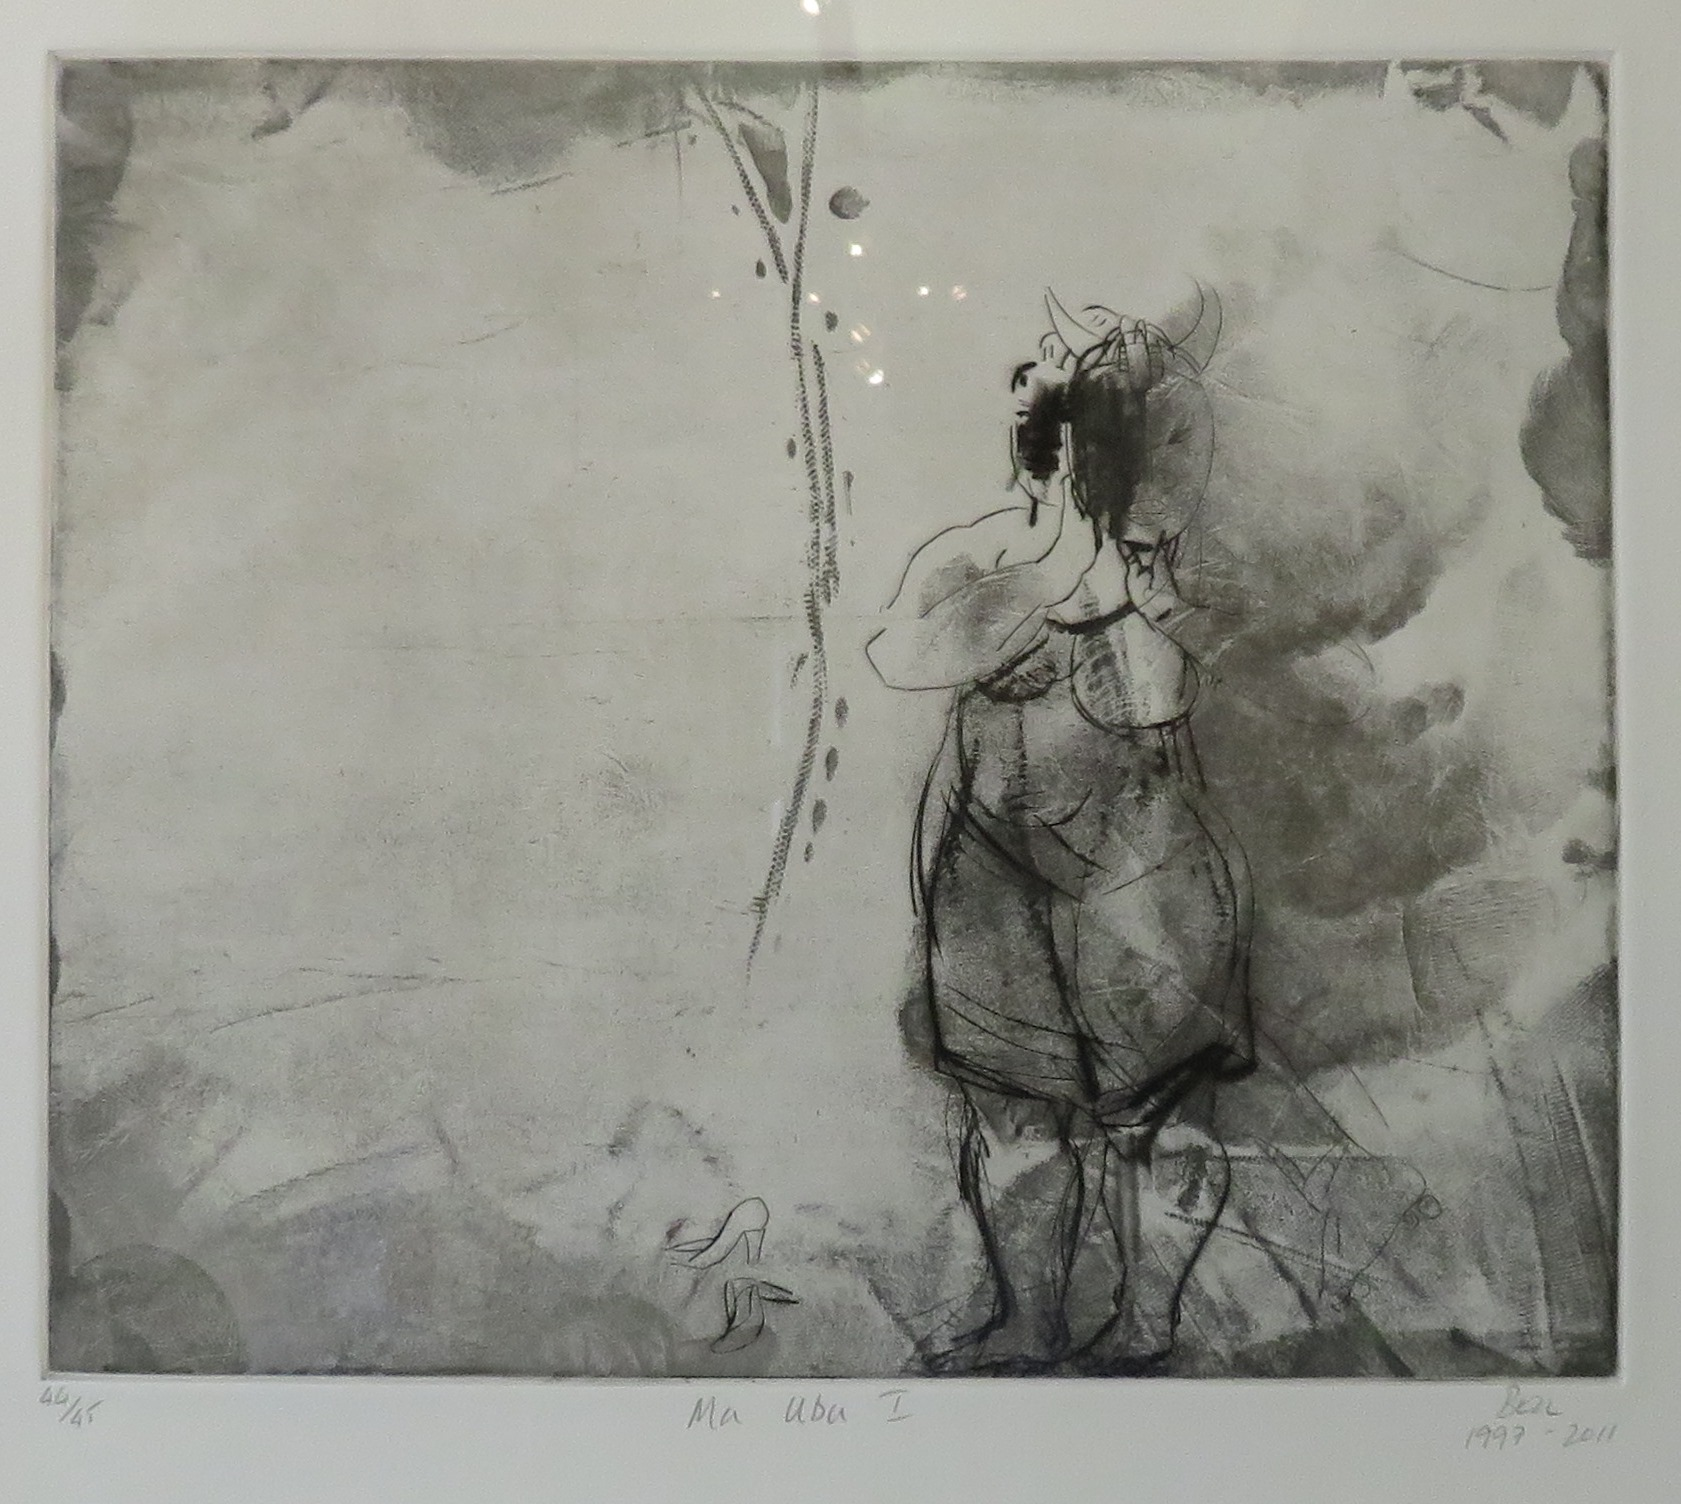 101A DEBORAH BELL, MA UBU I, ETCHING ON PAPER